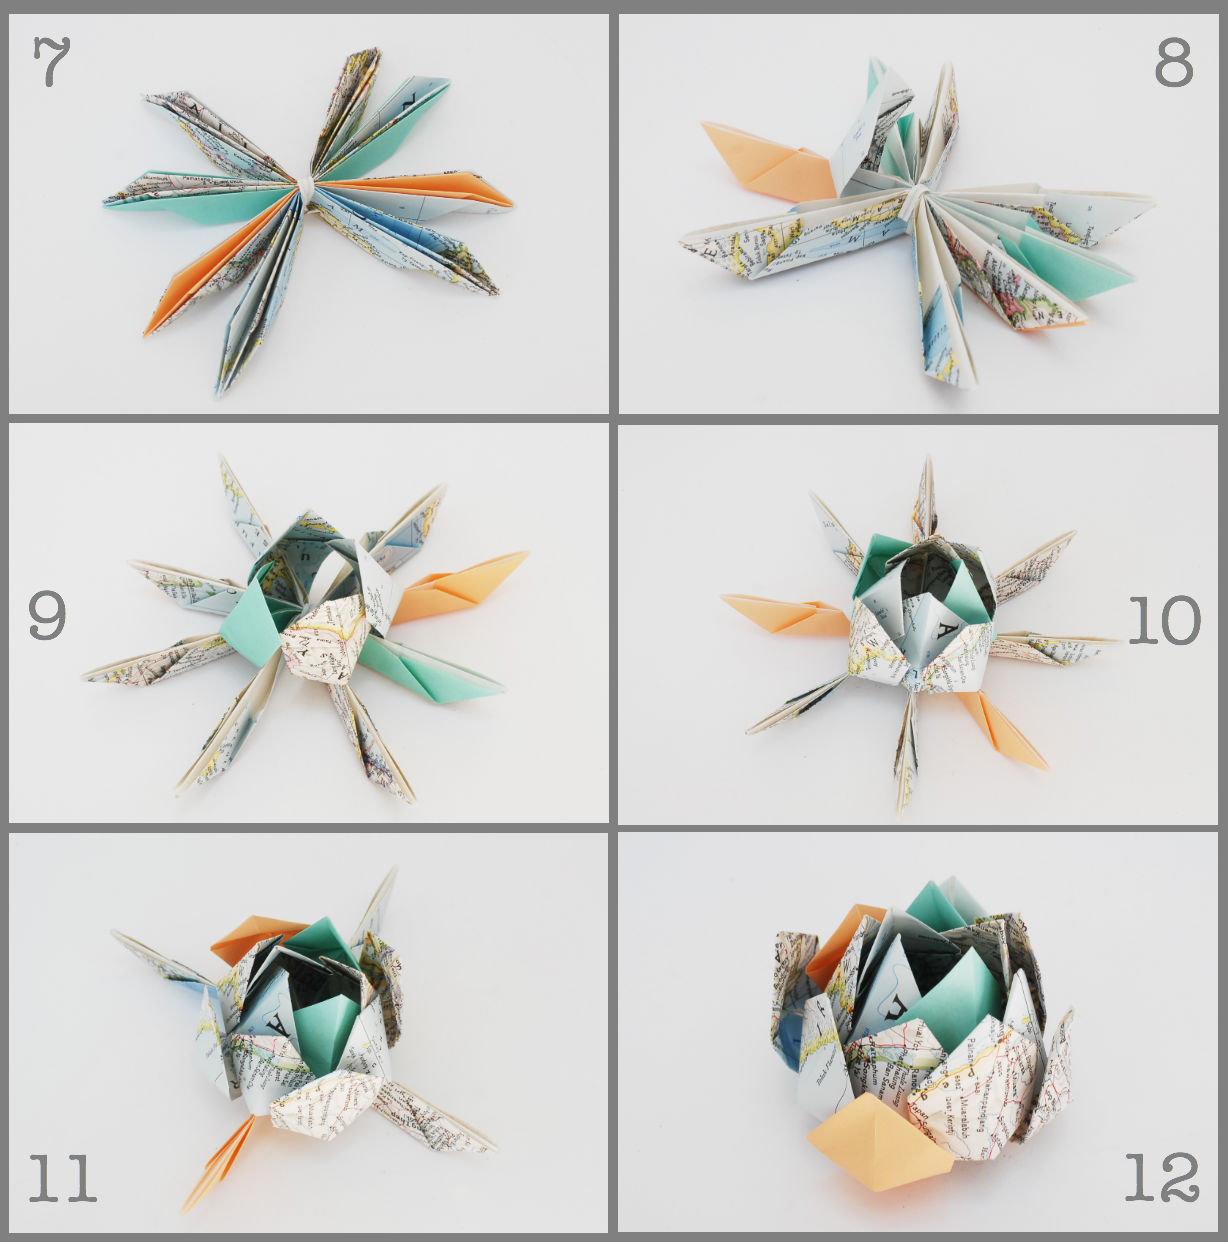 Origami Flower Step By Step | Search Results | Calendar 2015 - photo#34